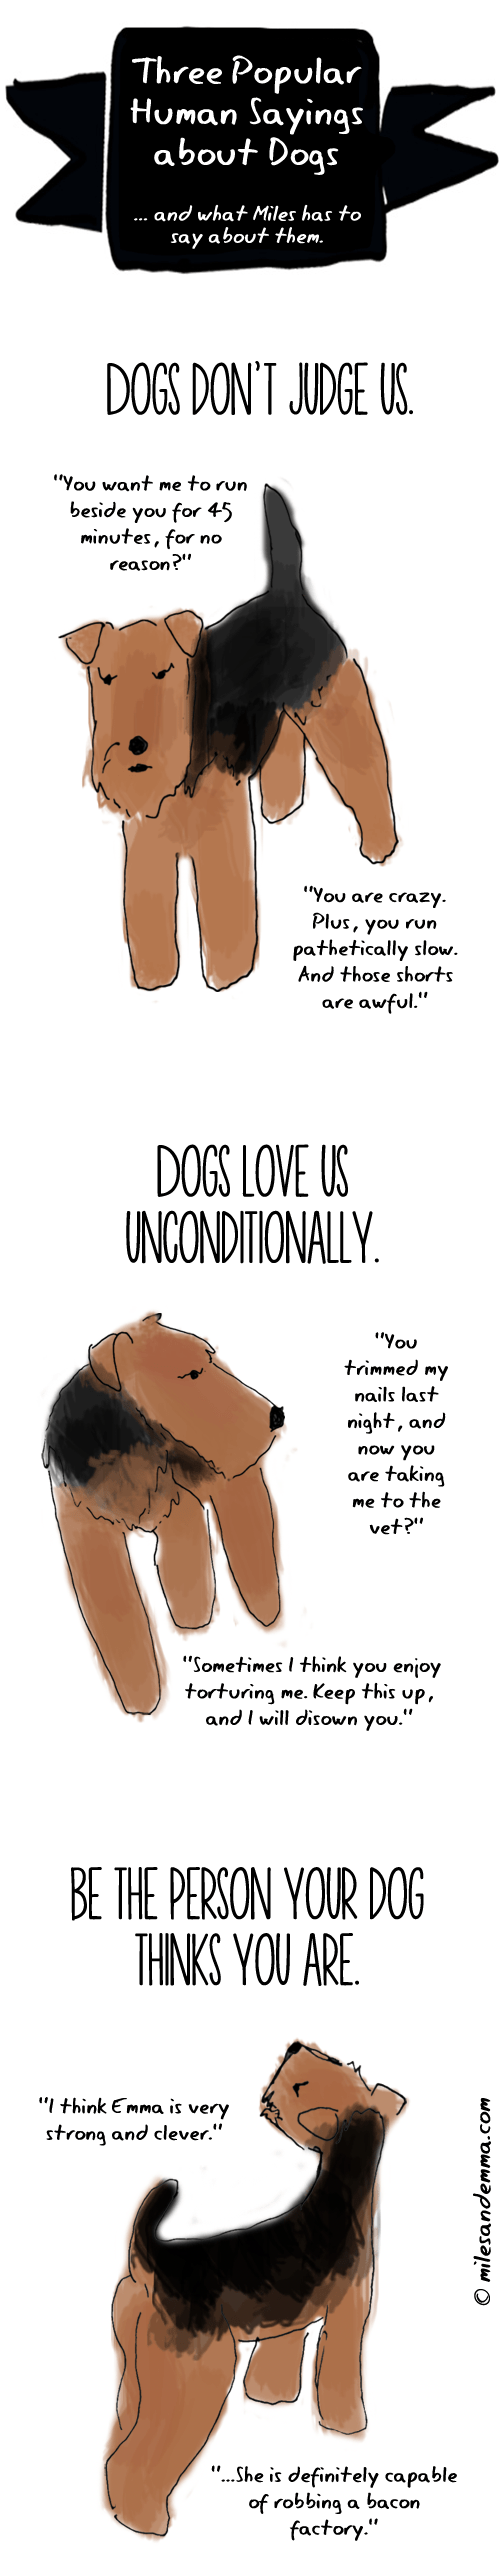 Three Popular Sayings about Dogs </br>...and what Miles has to say about them.